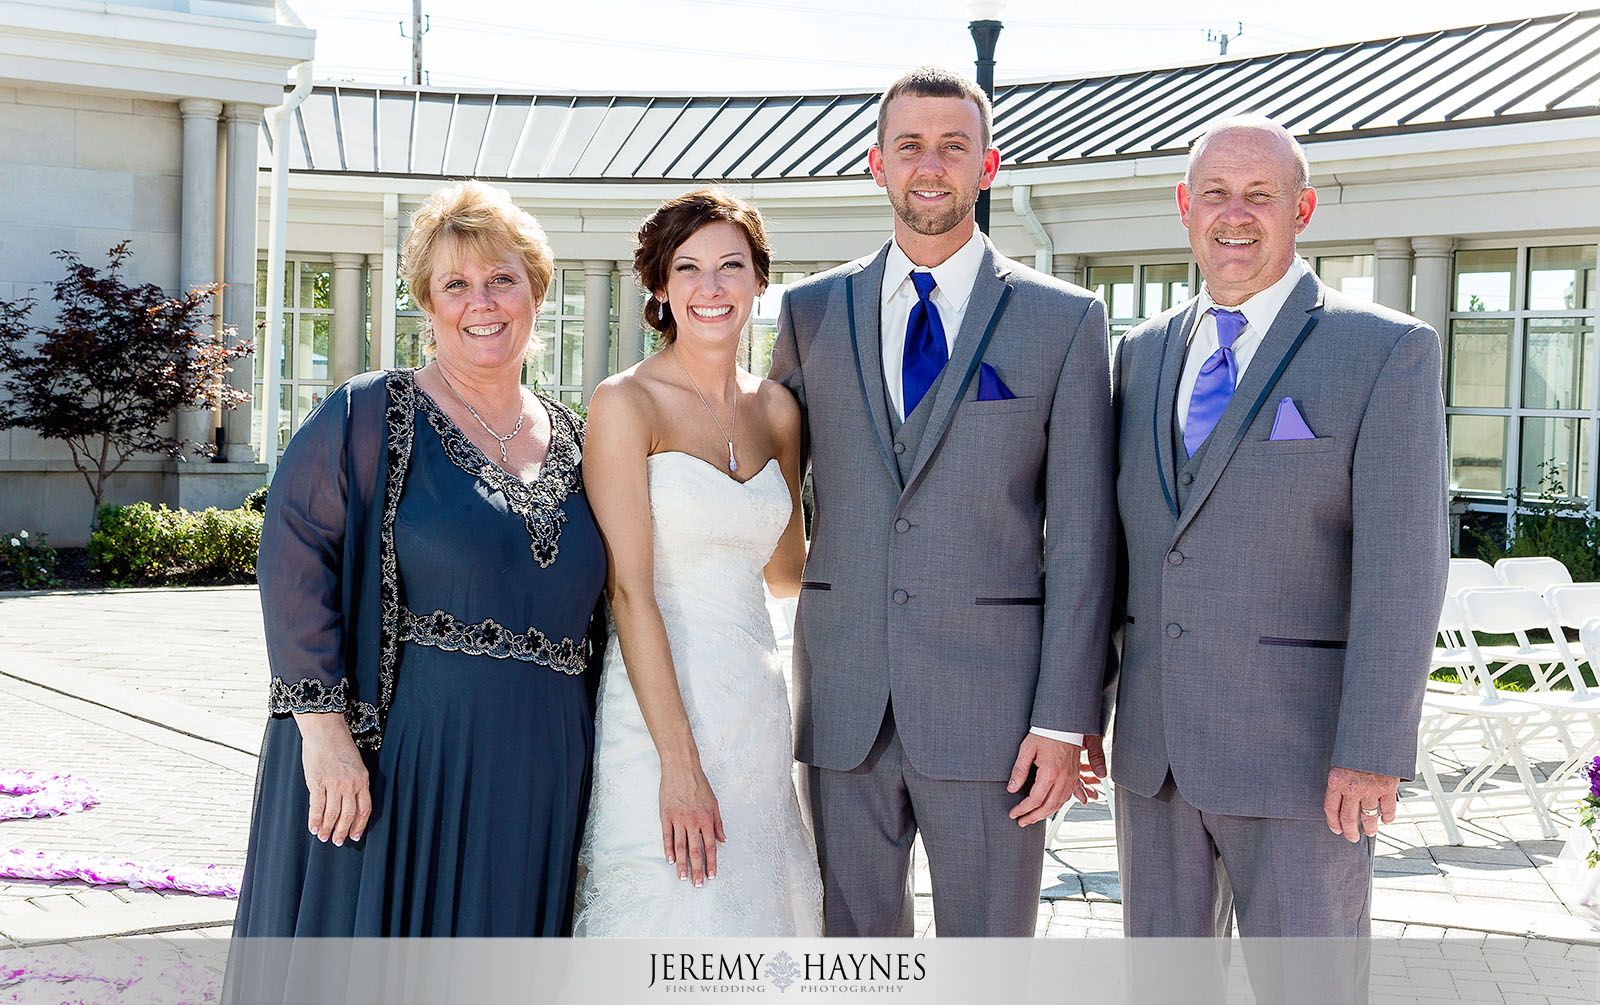 family-pictures-timeline-jeremy-haynes-photography.jpg